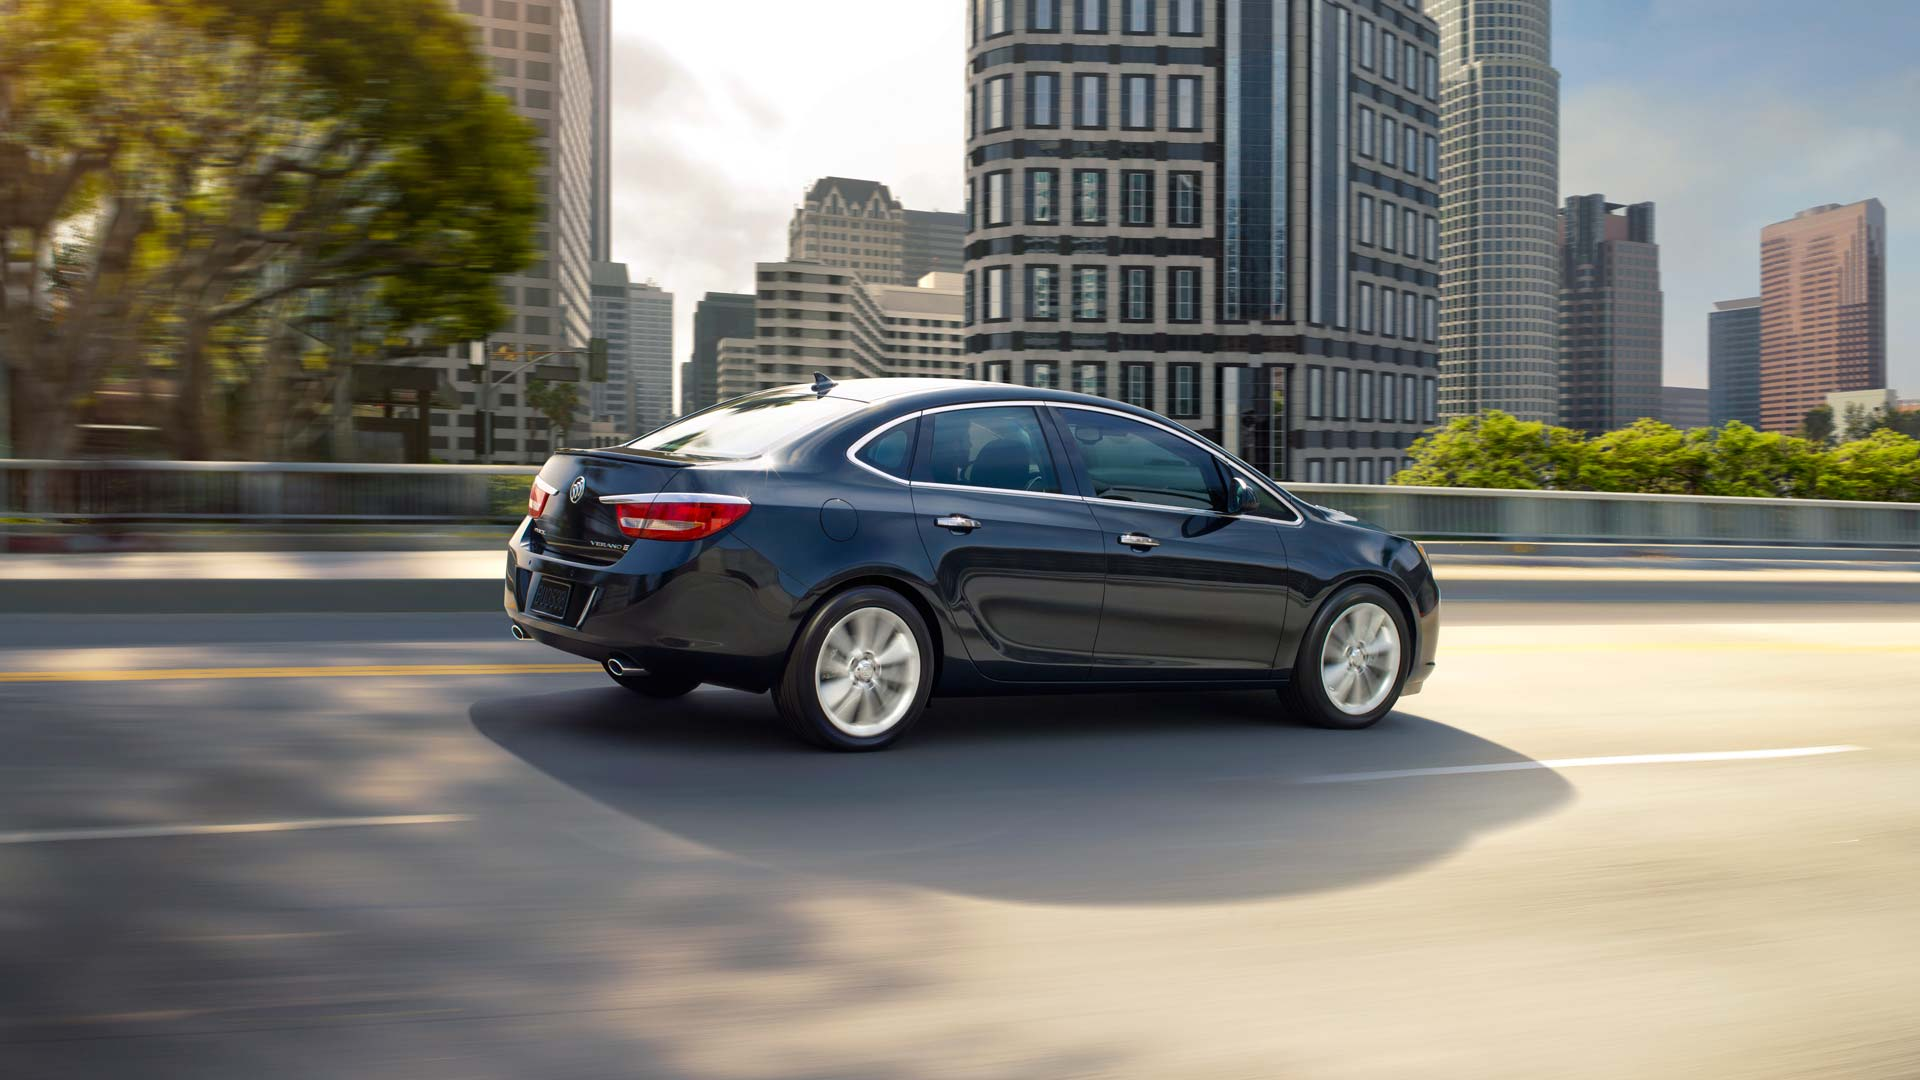 buick verano holds value bucks the small sedan trends. Black Bedroom Furniture Sets. Home Design Ideas